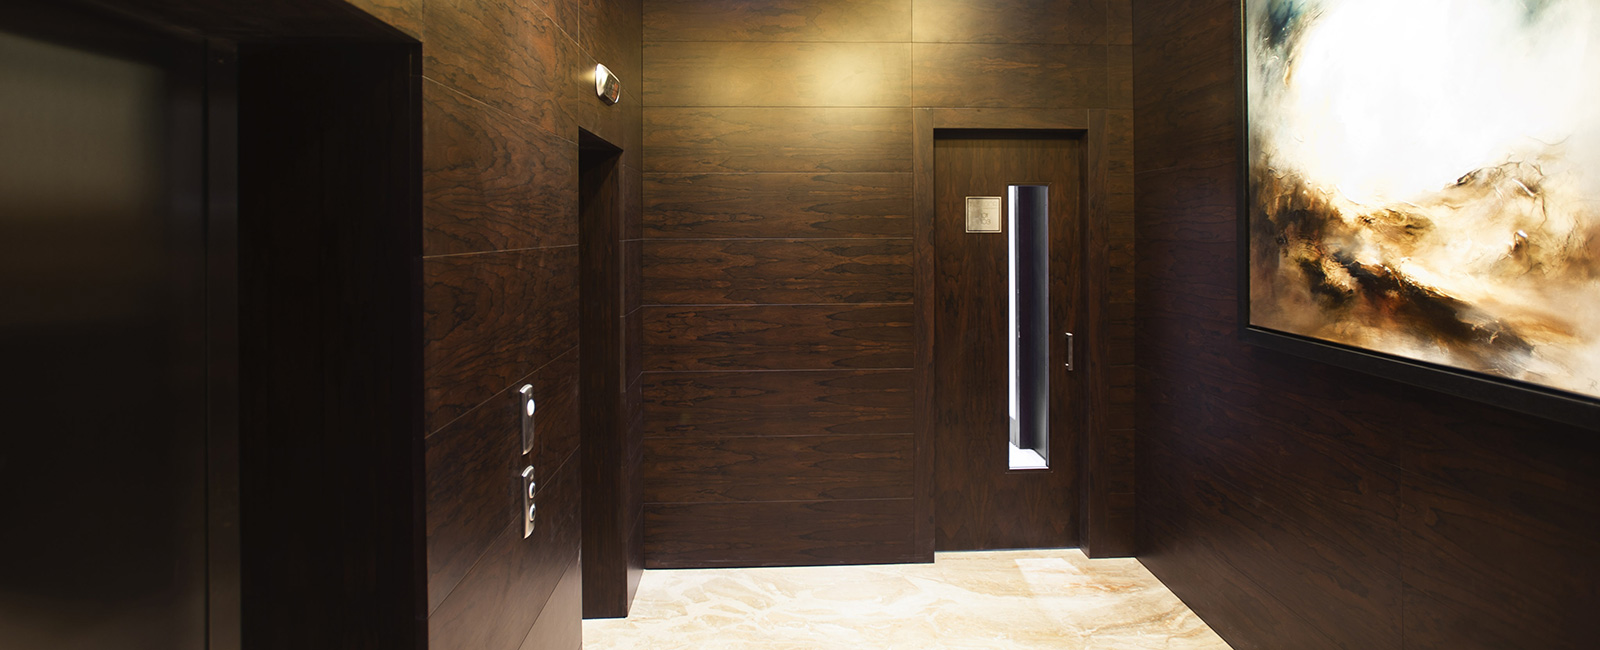 6a3612c40 Fratelli Maestri is one of the few in the sector to realize REI fire doors  in solid wood, capable of combining high-level aesthetics with the most  advanced ...